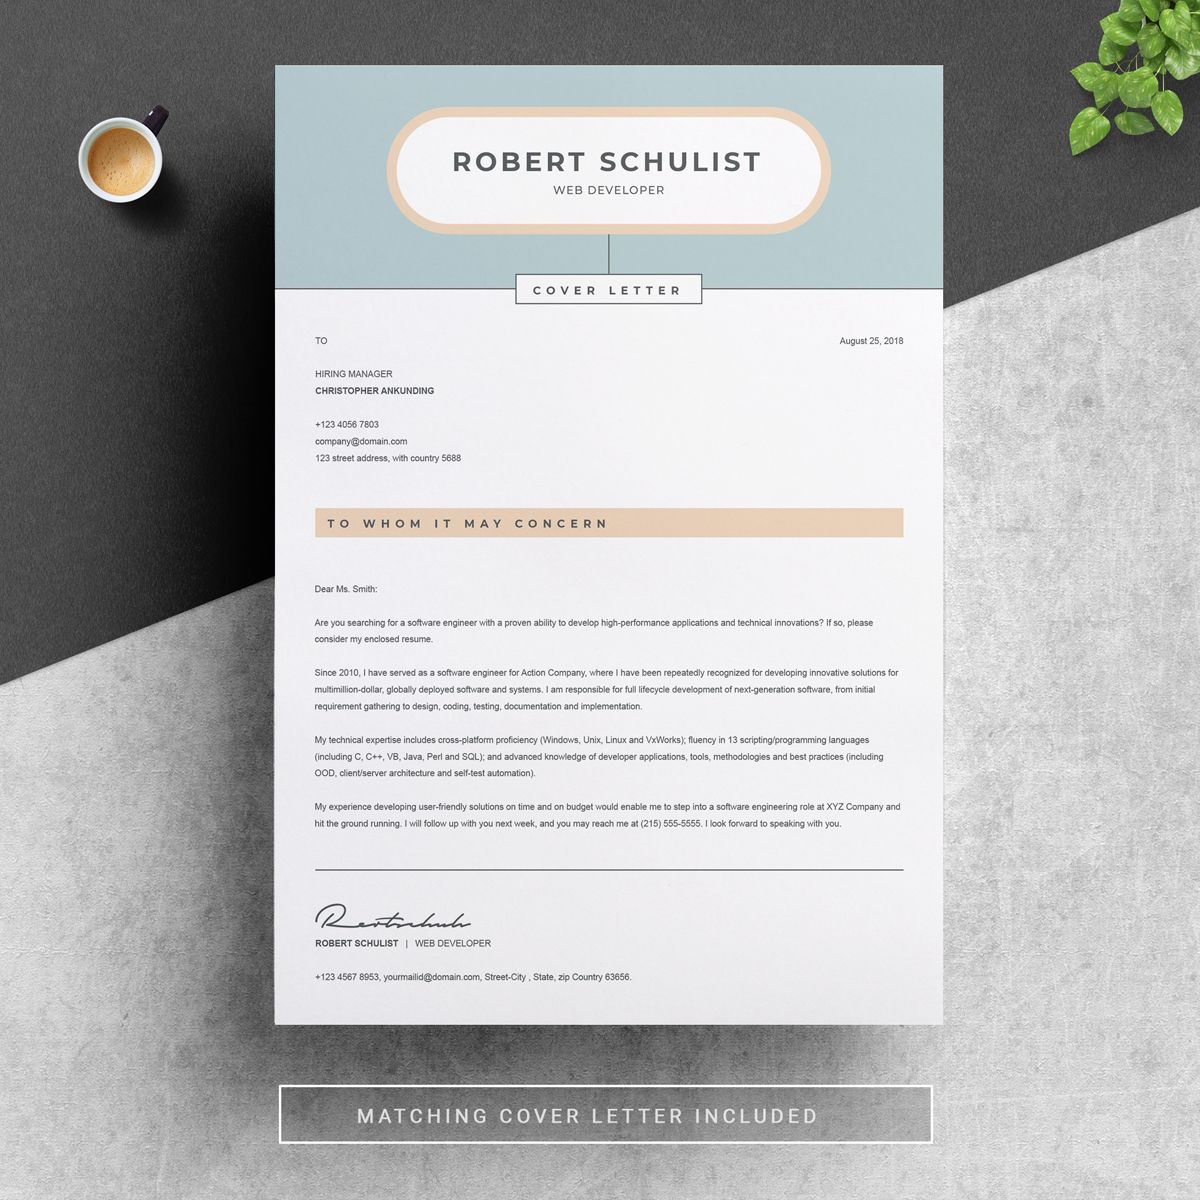 Robert Schulist Resume Template | Social Media Graphics ...